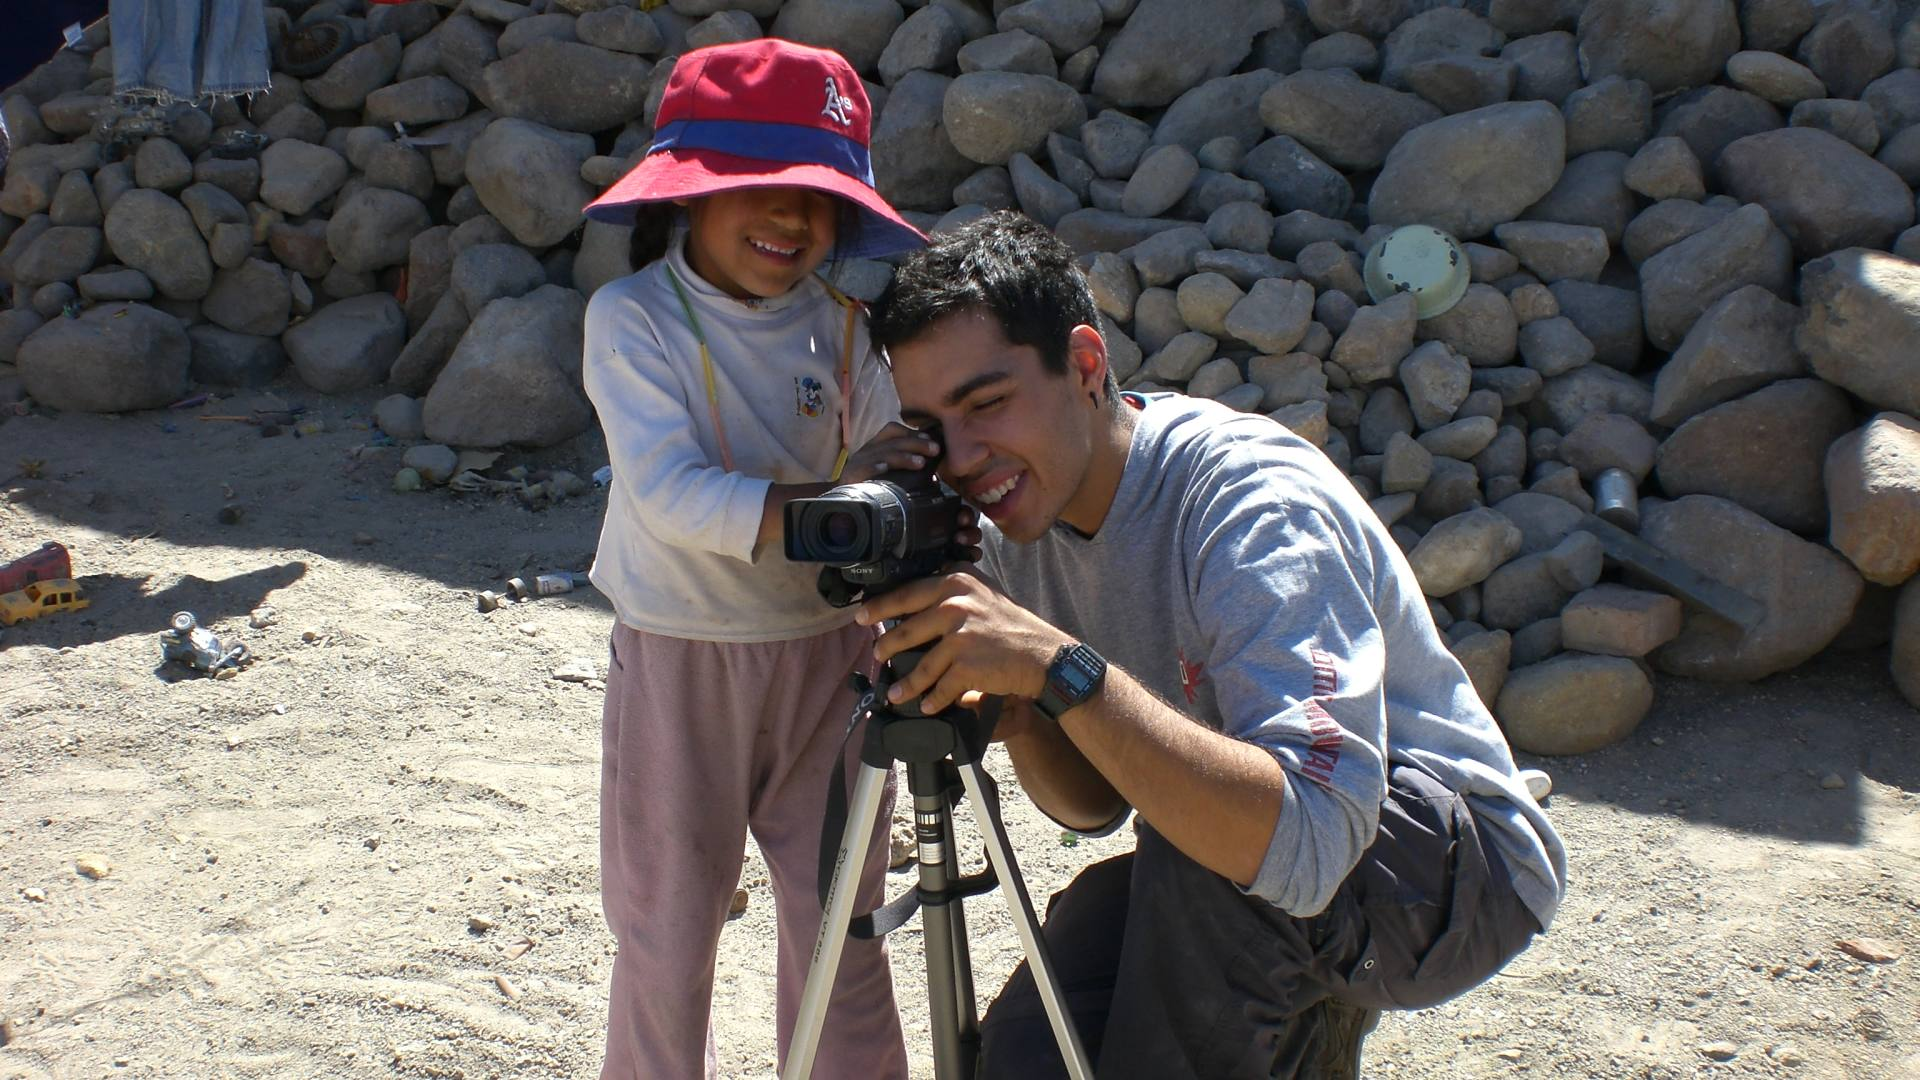 In 2007, we helped a family of 8 get access to clean water in Peru.